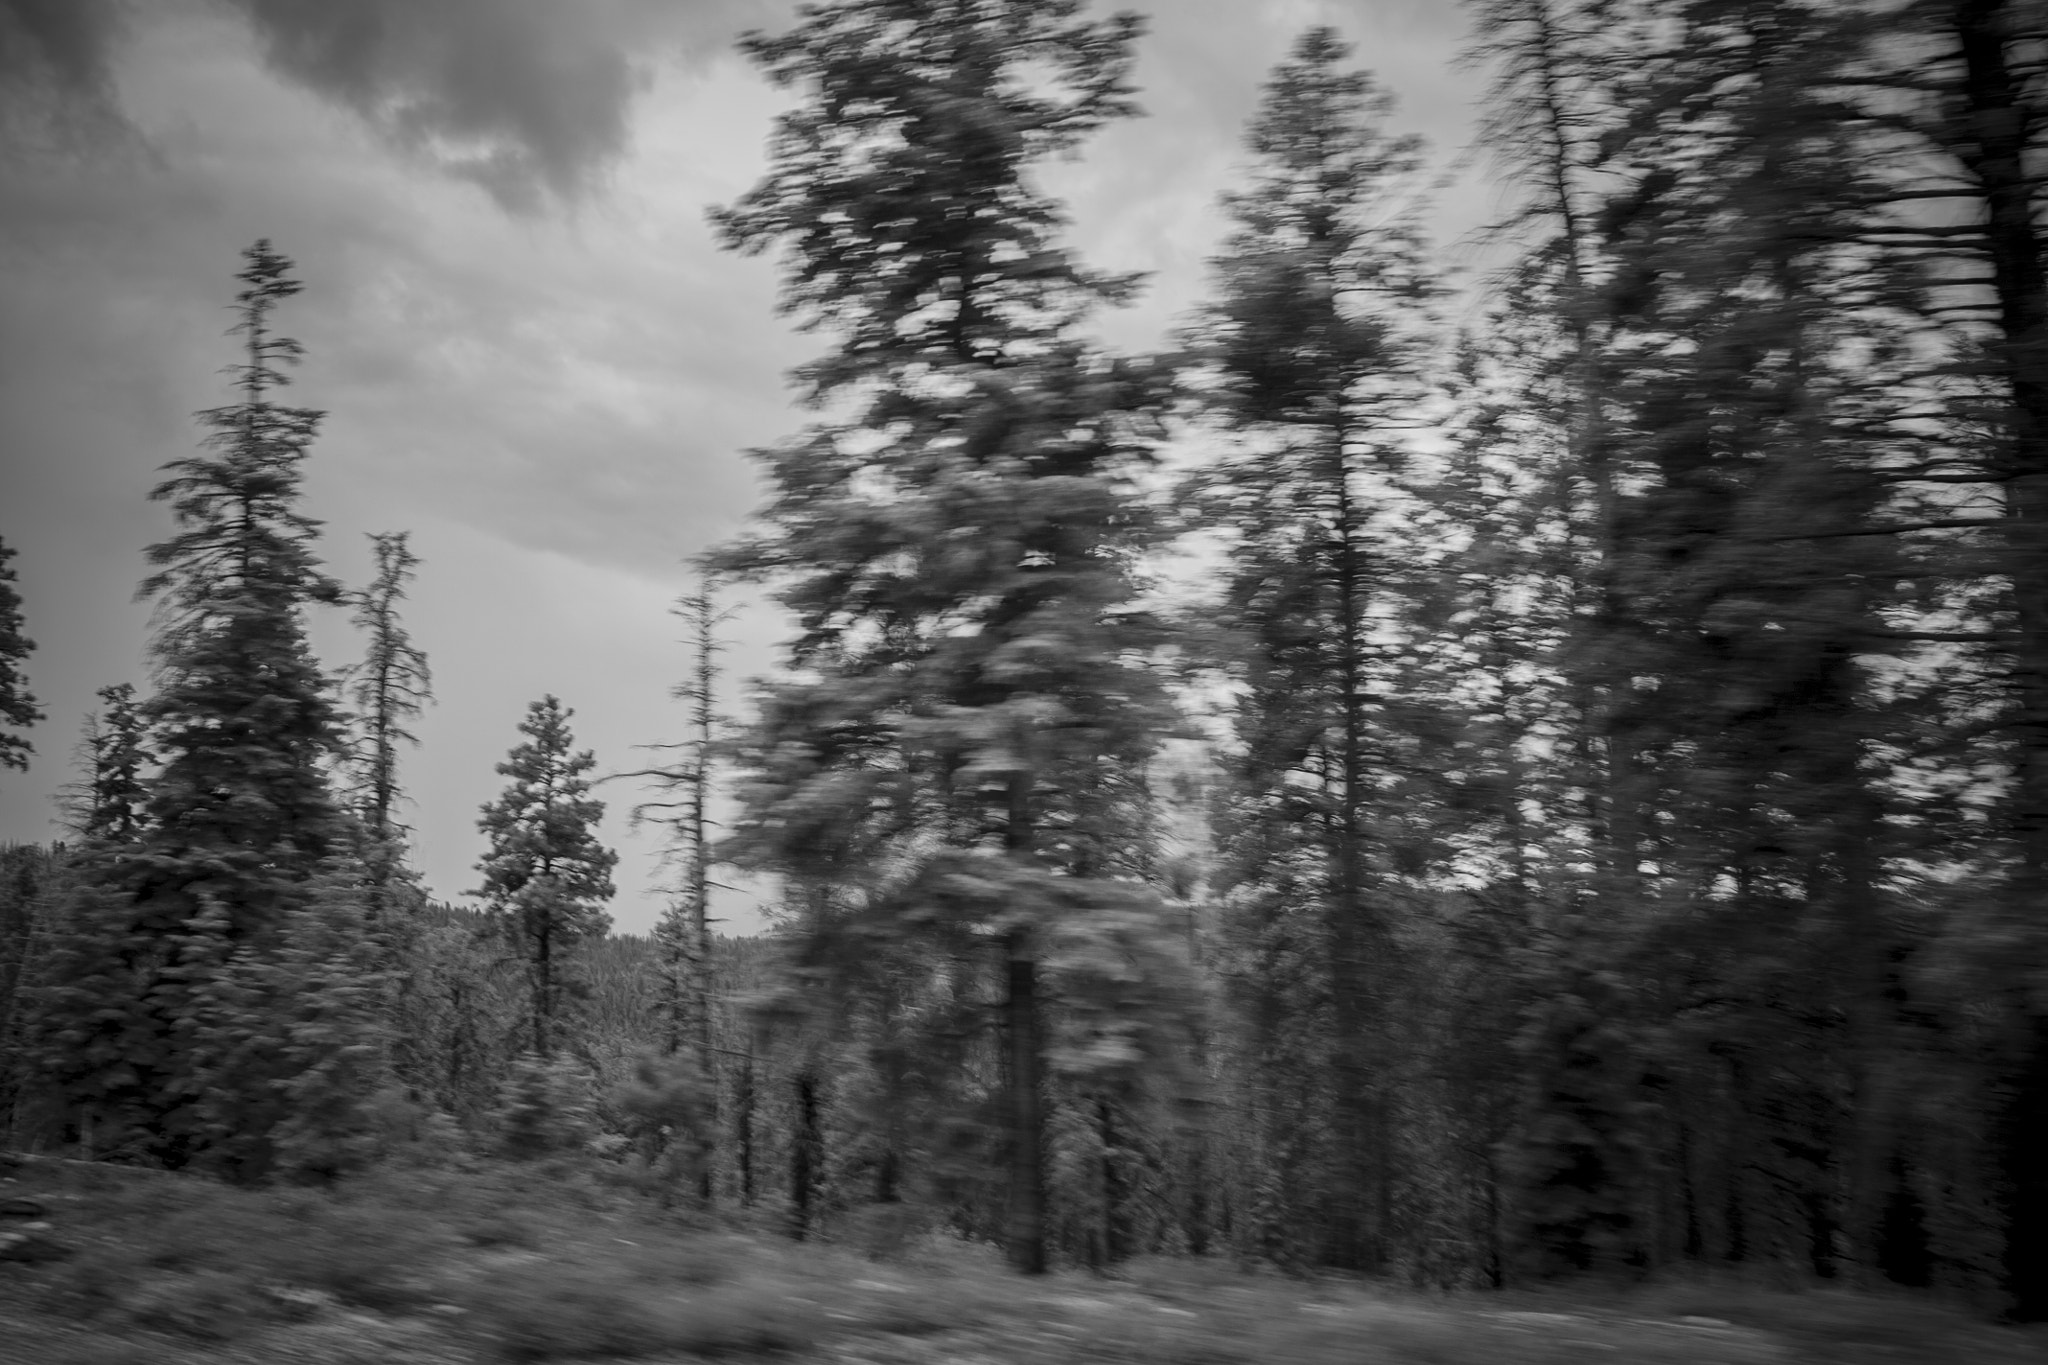 Photograph Bryce in Motion by Shane Moss on 500px